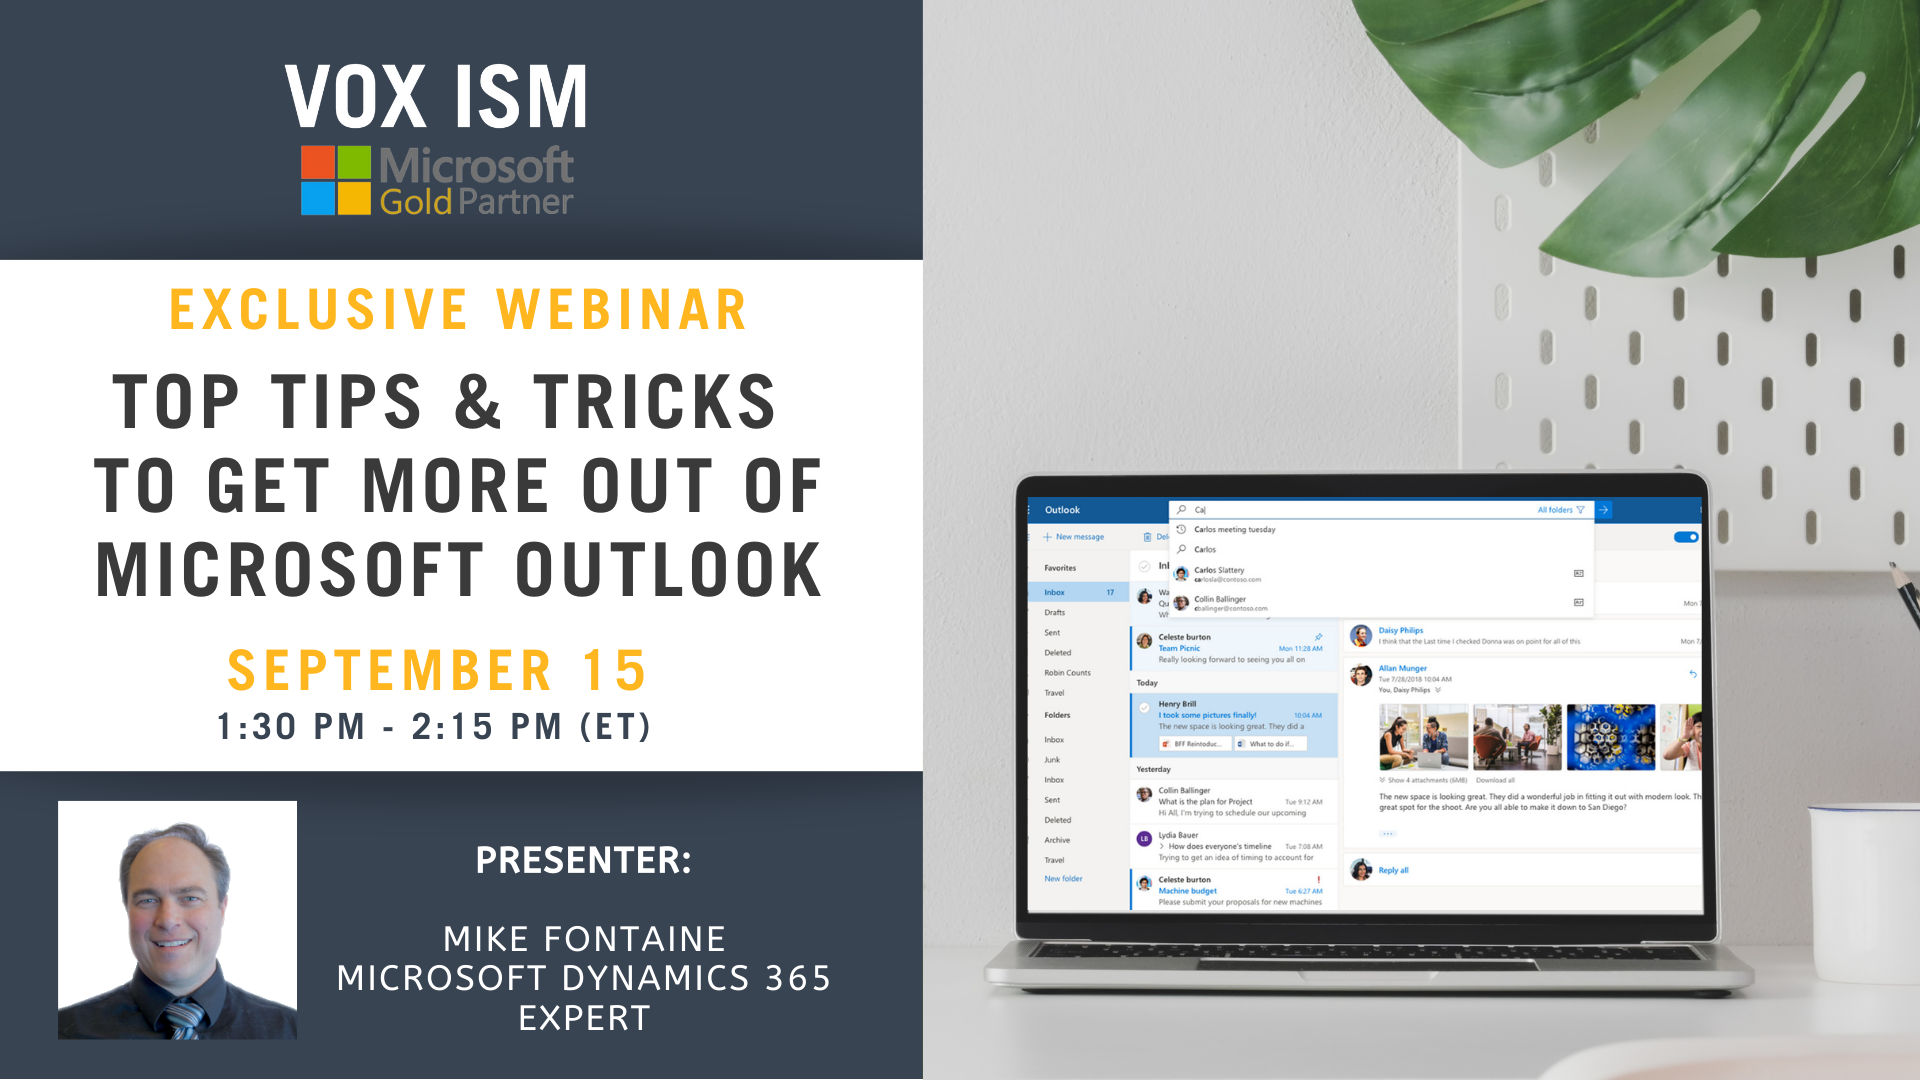 Top Tips & Tricks to Get More Out of Microsoft Outlook - September 15 - Webinar